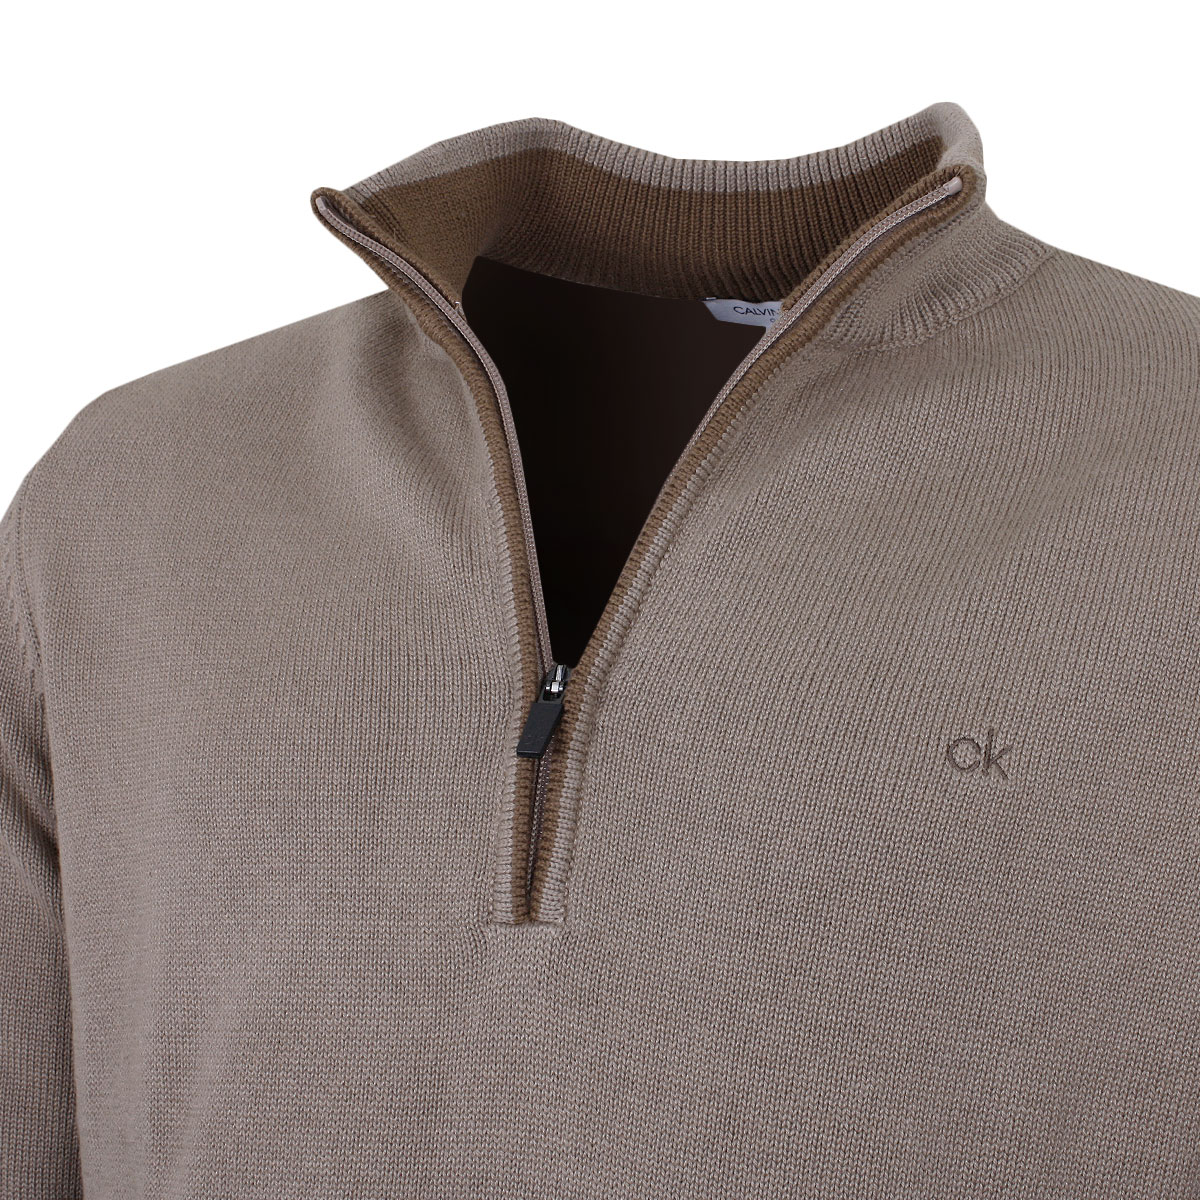 Calvin-Klein-Golf-Mens-2019-Chunky-Cotton-1-2-Zip-Golf-Top-Sweater-28-OFF-RRP thumbnail 41